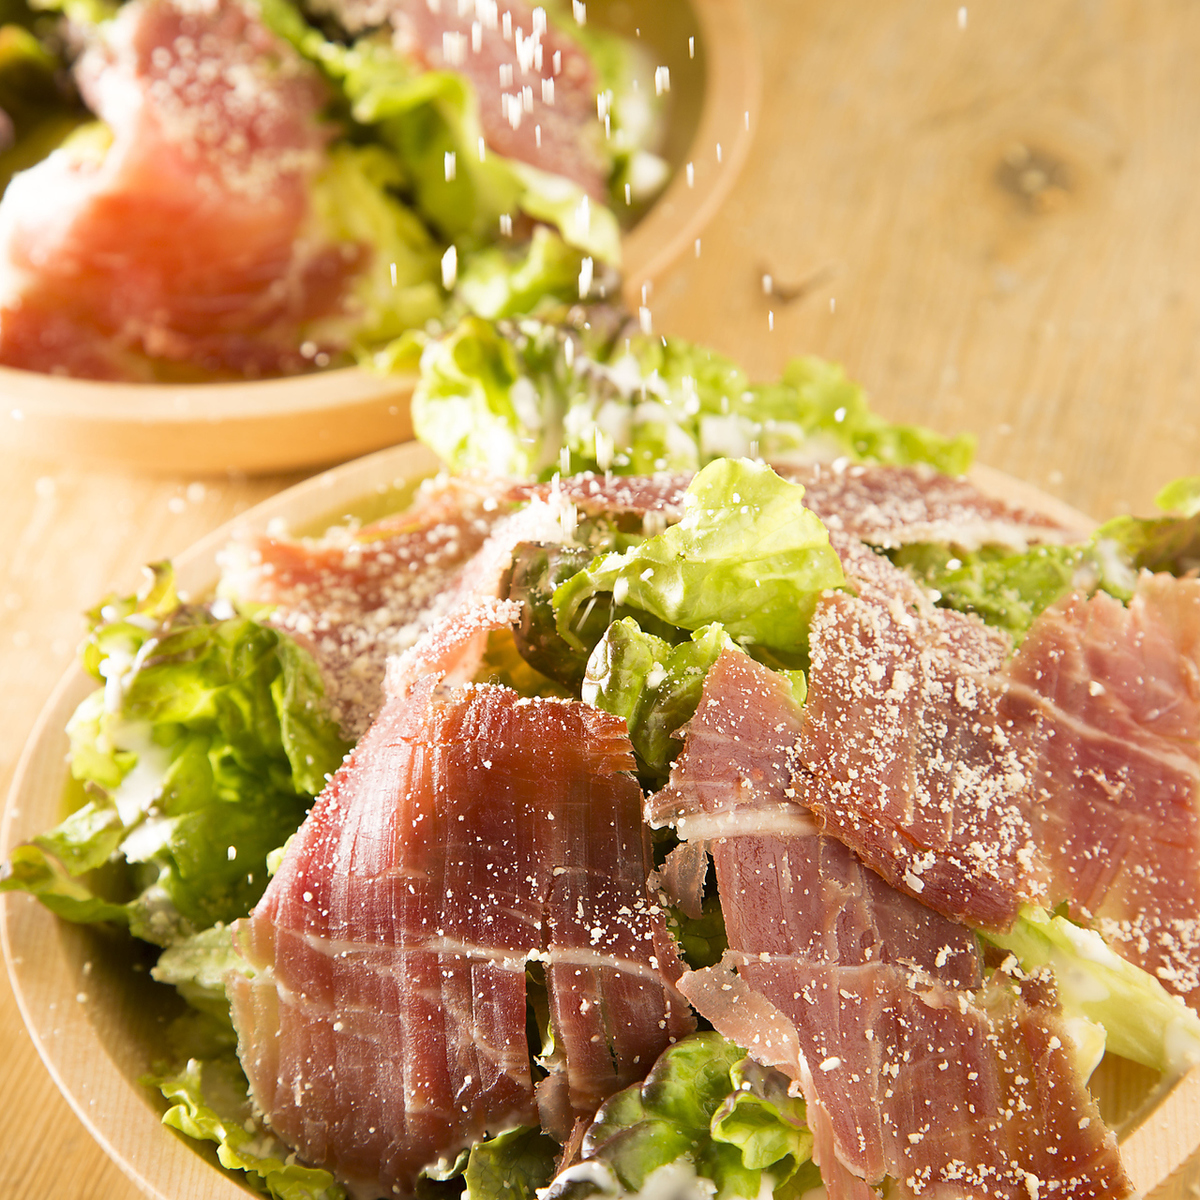 Spanish hamon Serrano raw ham Caesar salad